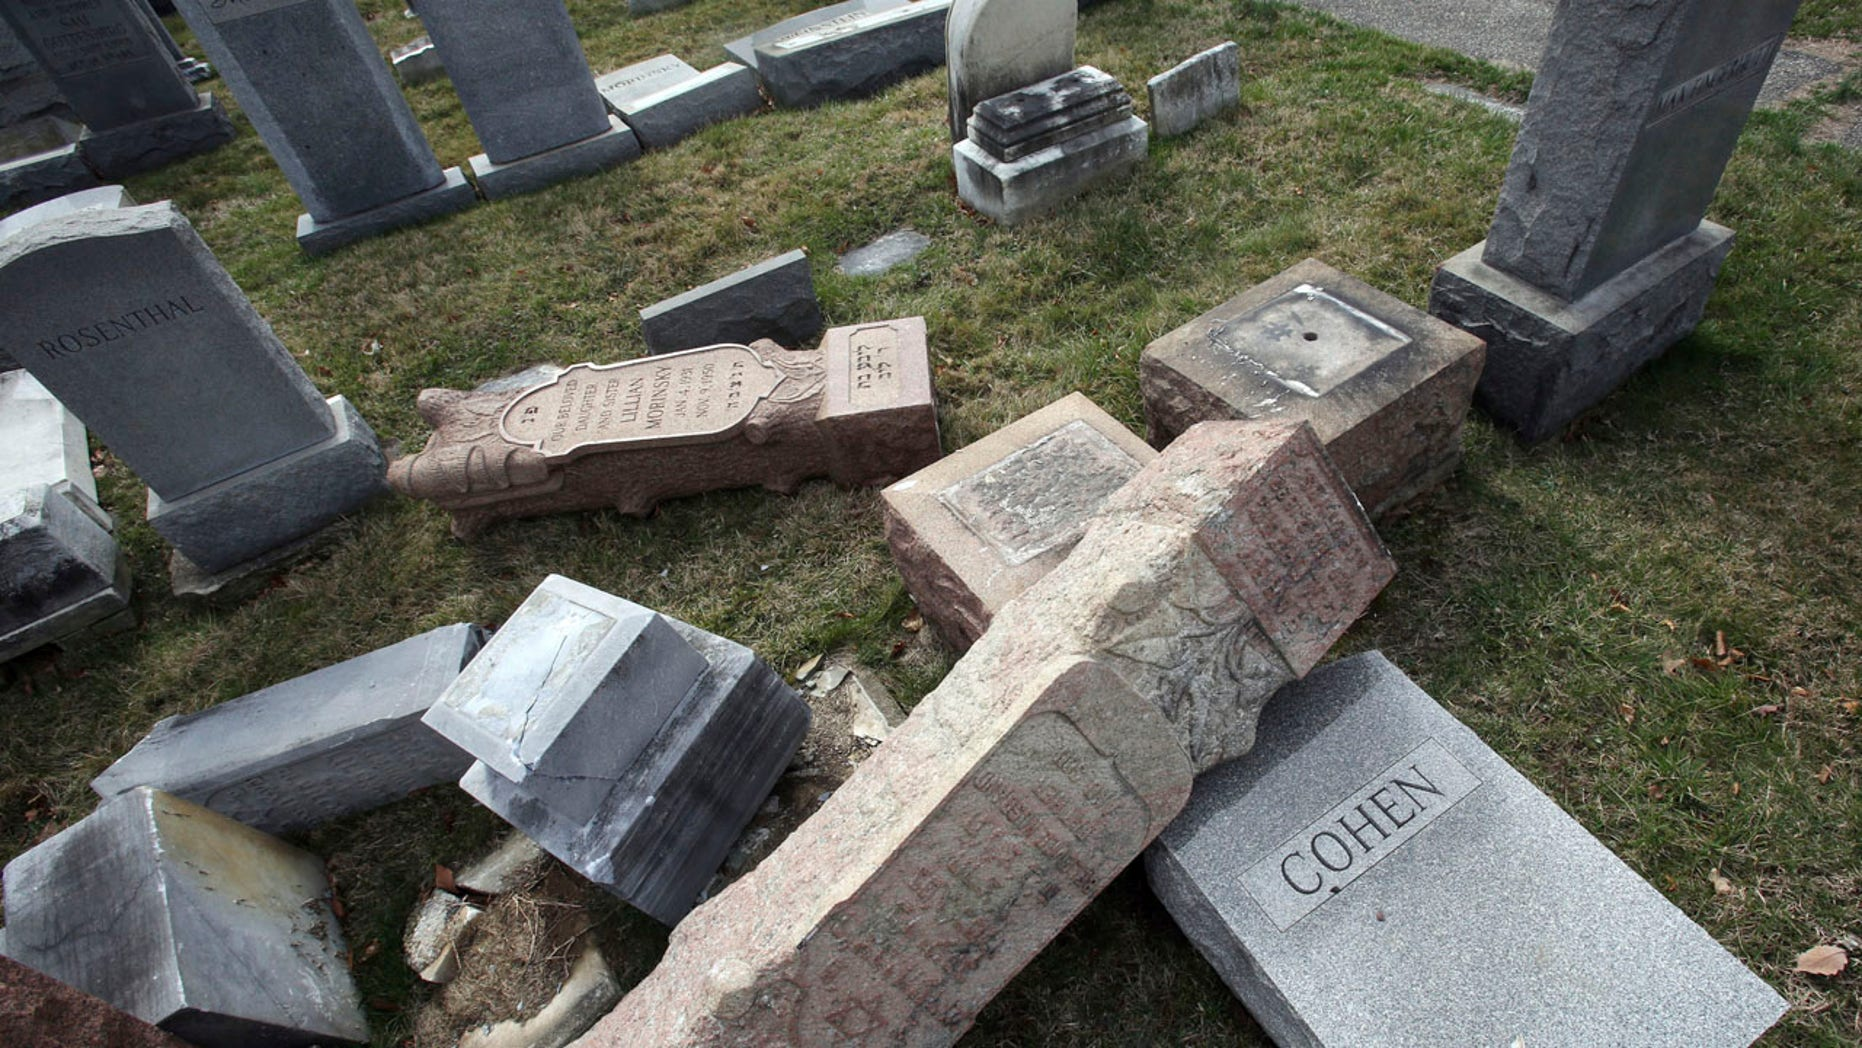 Monday, Feb. 27, 2017: Toppled and damaged headstones rest on the ground at Mount Carmel Cemetery in Philadelphia. The Anti-Defamation League found an increase in cases of anti-Semitic intimidation and vandalism in 2016, evidence that anti-Jewish bias intensified during the election.